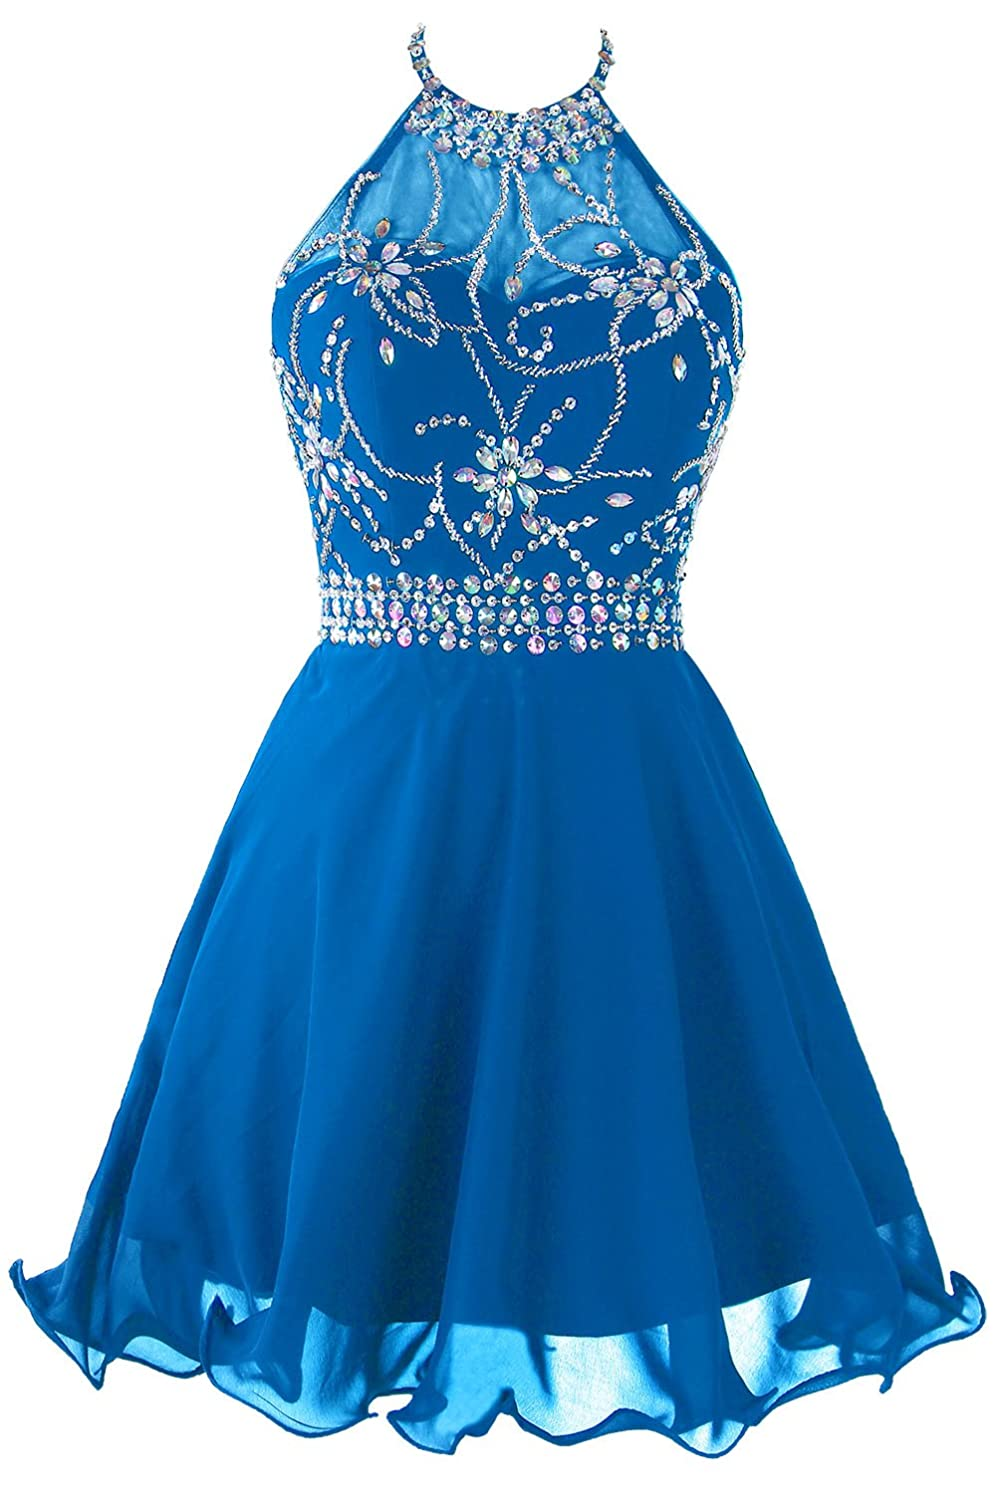 Topdress Women's Short Beaded Prom Dress Halter Homecoming Dress Backless AGRN036